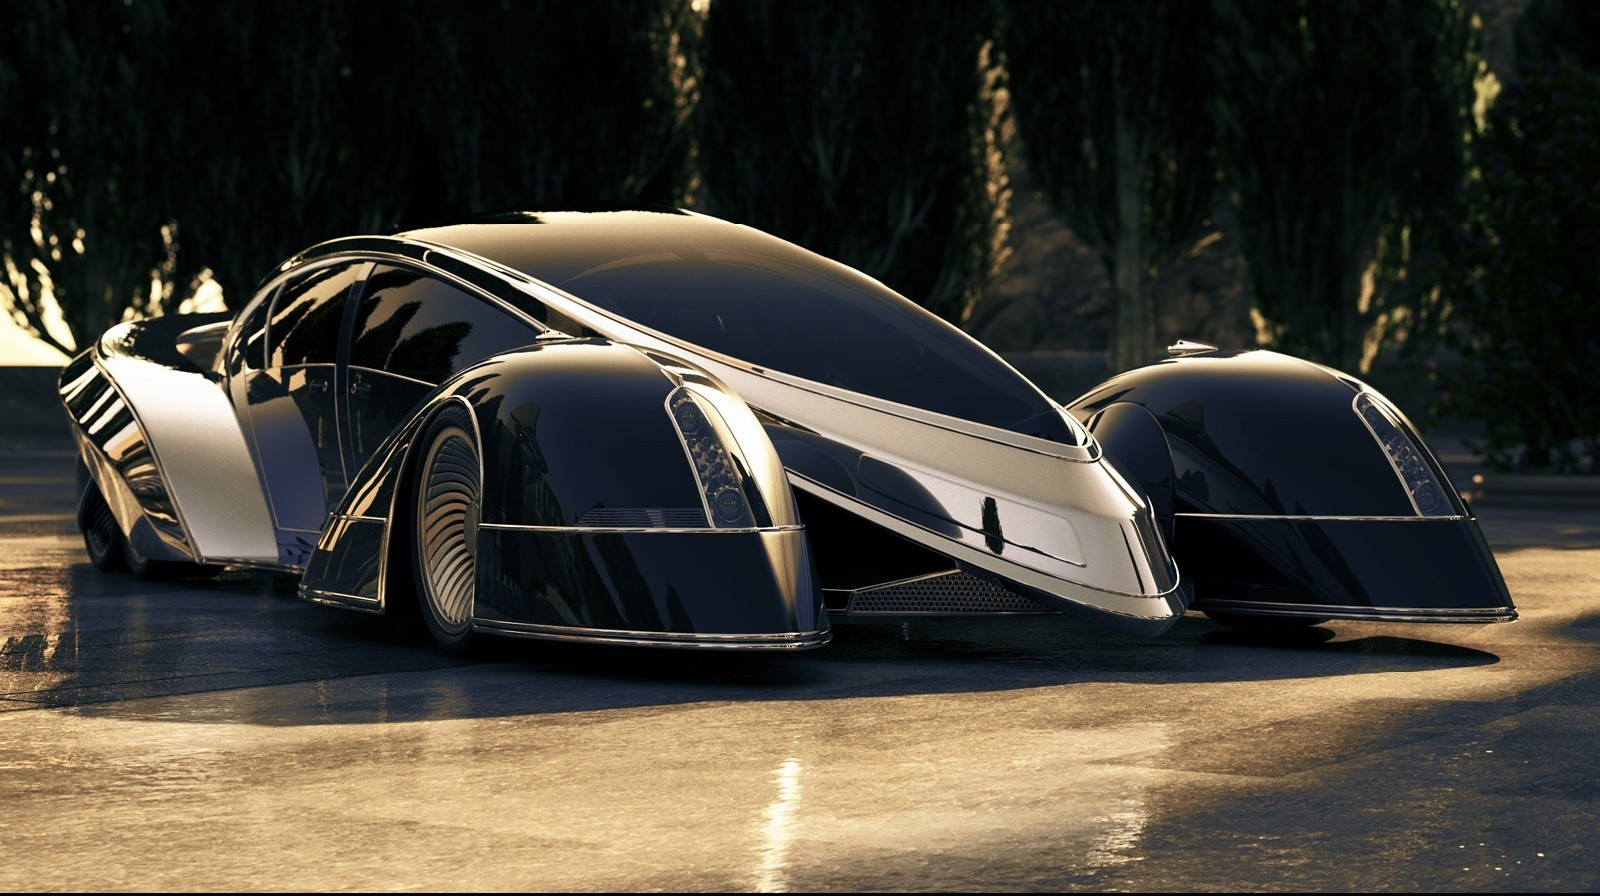 black futuristic cars shiny